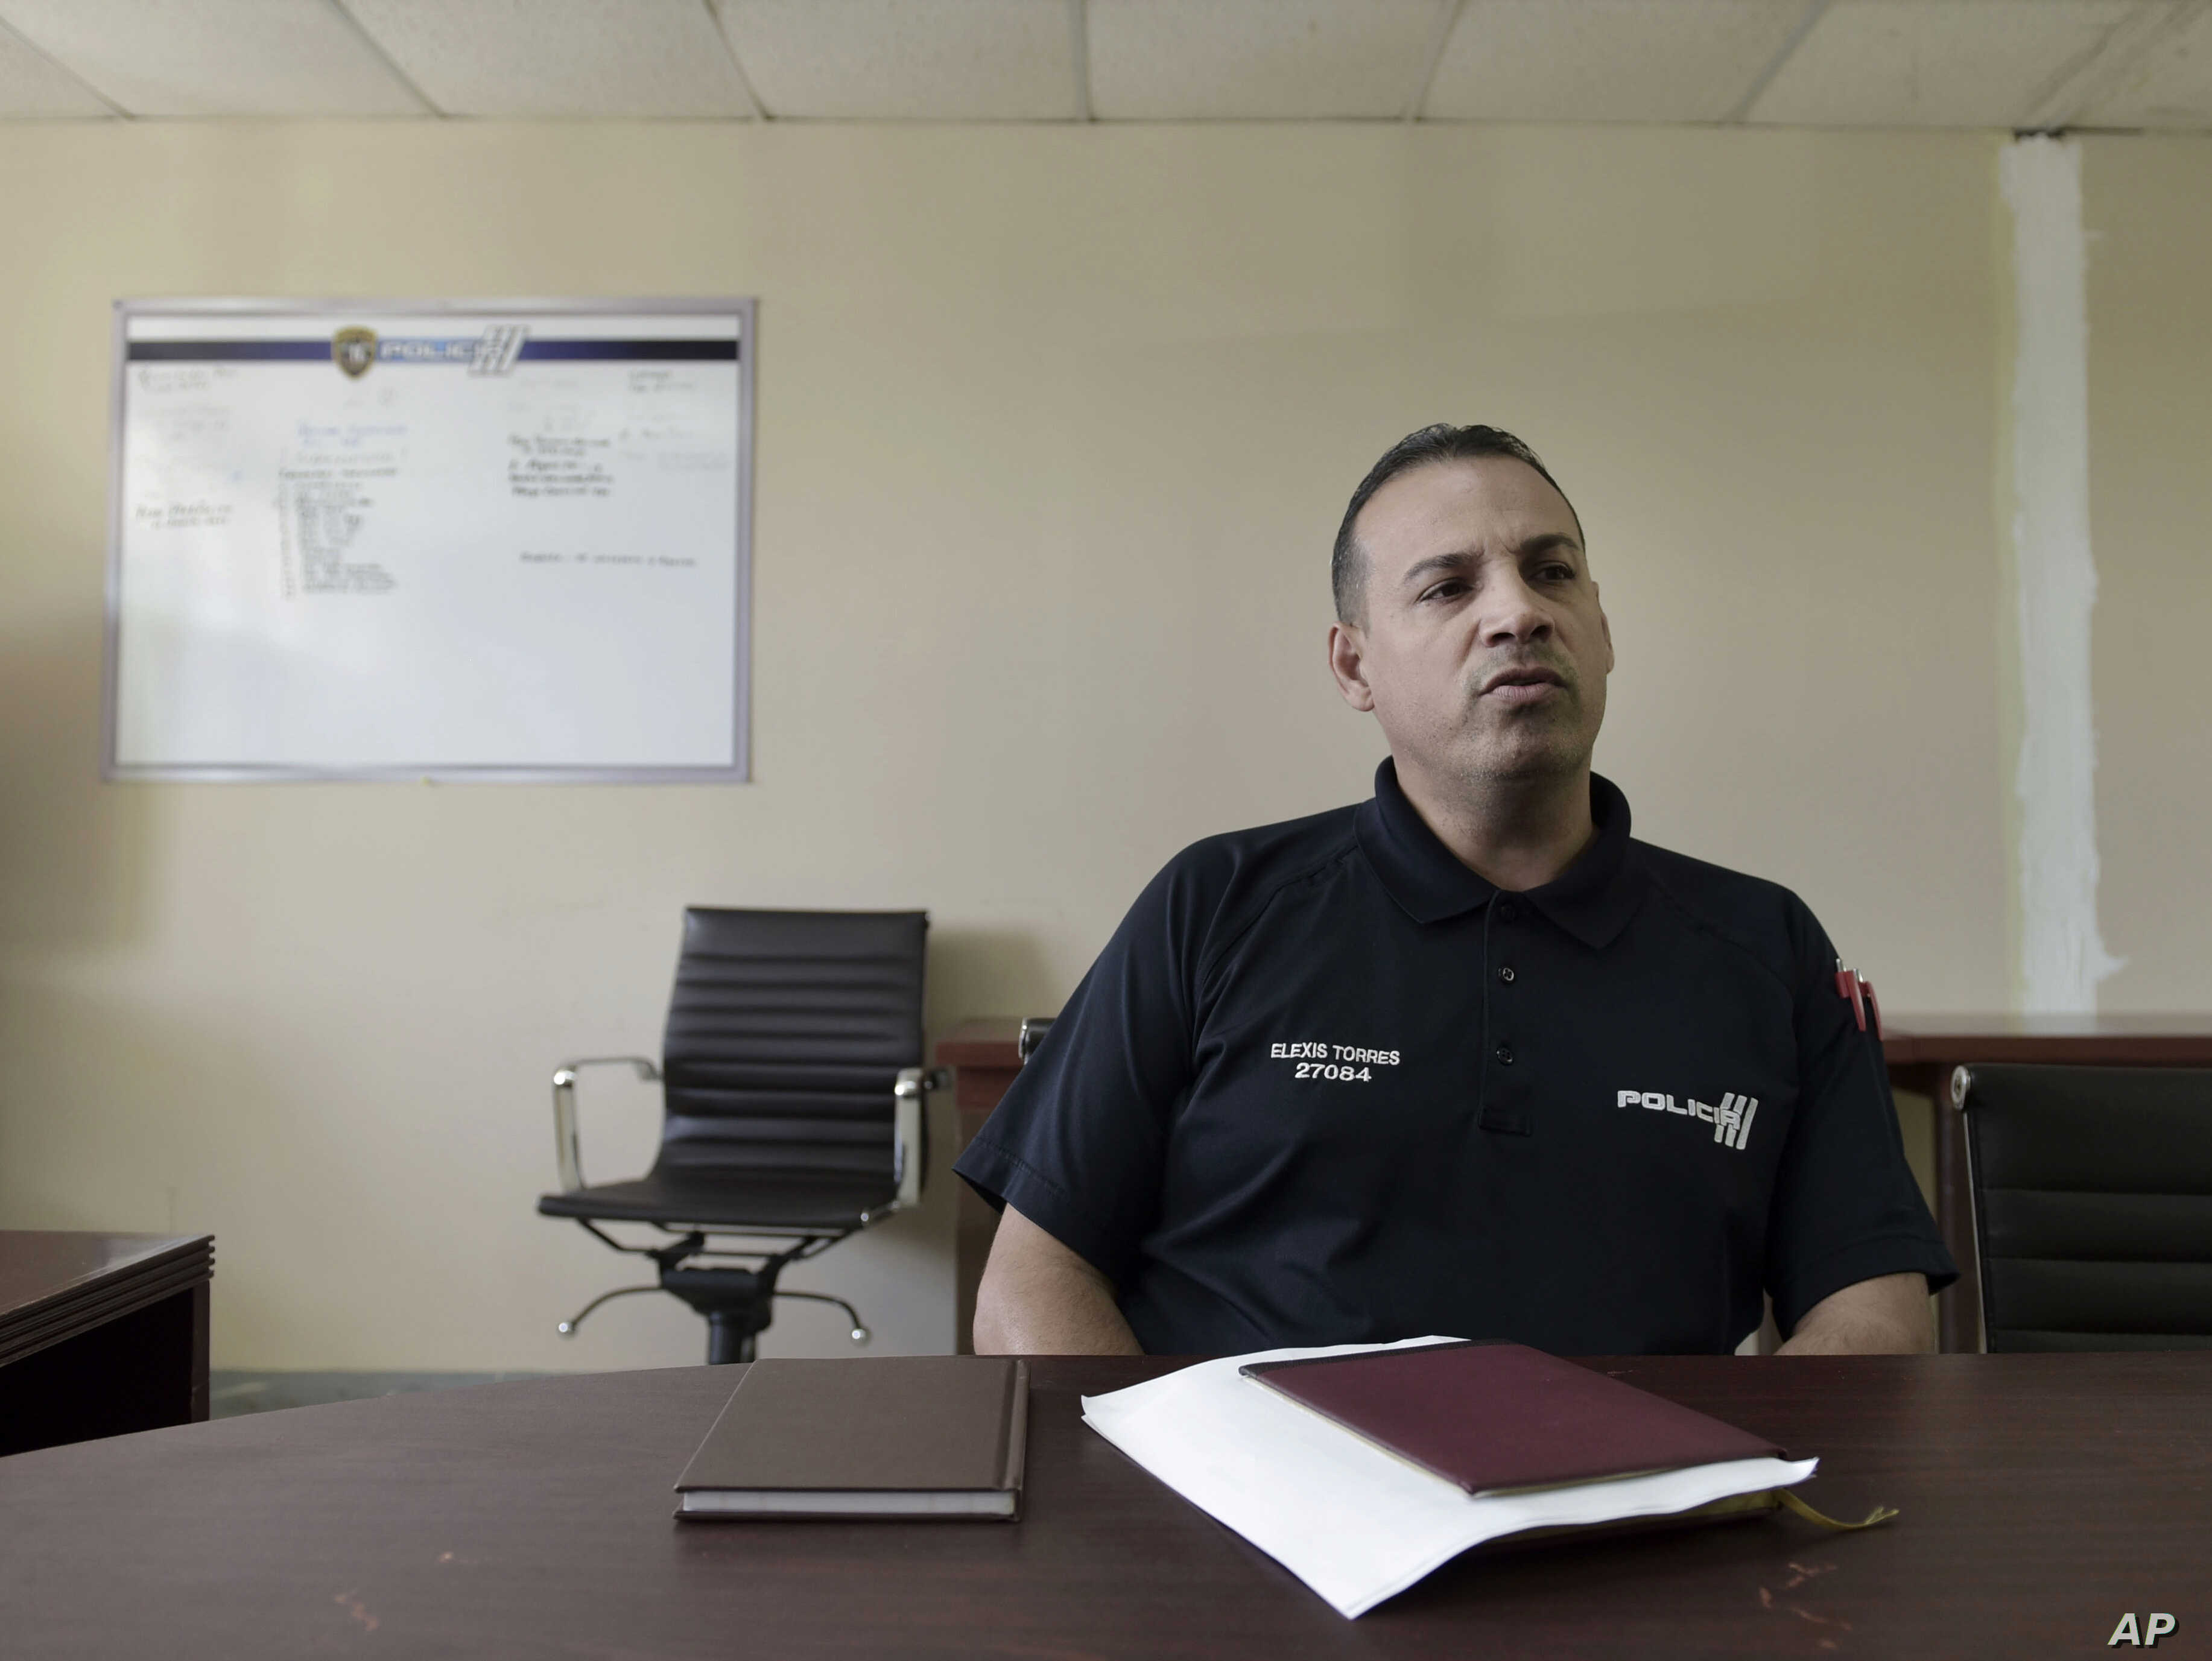 In this Jan. 9, 2018 photo, inspector Elexis Torres, is interviewed in Carolina, Puerto Rico. Torres heads a unit that is investigating eight homicides in a jurisdiction that includes the working-class city.